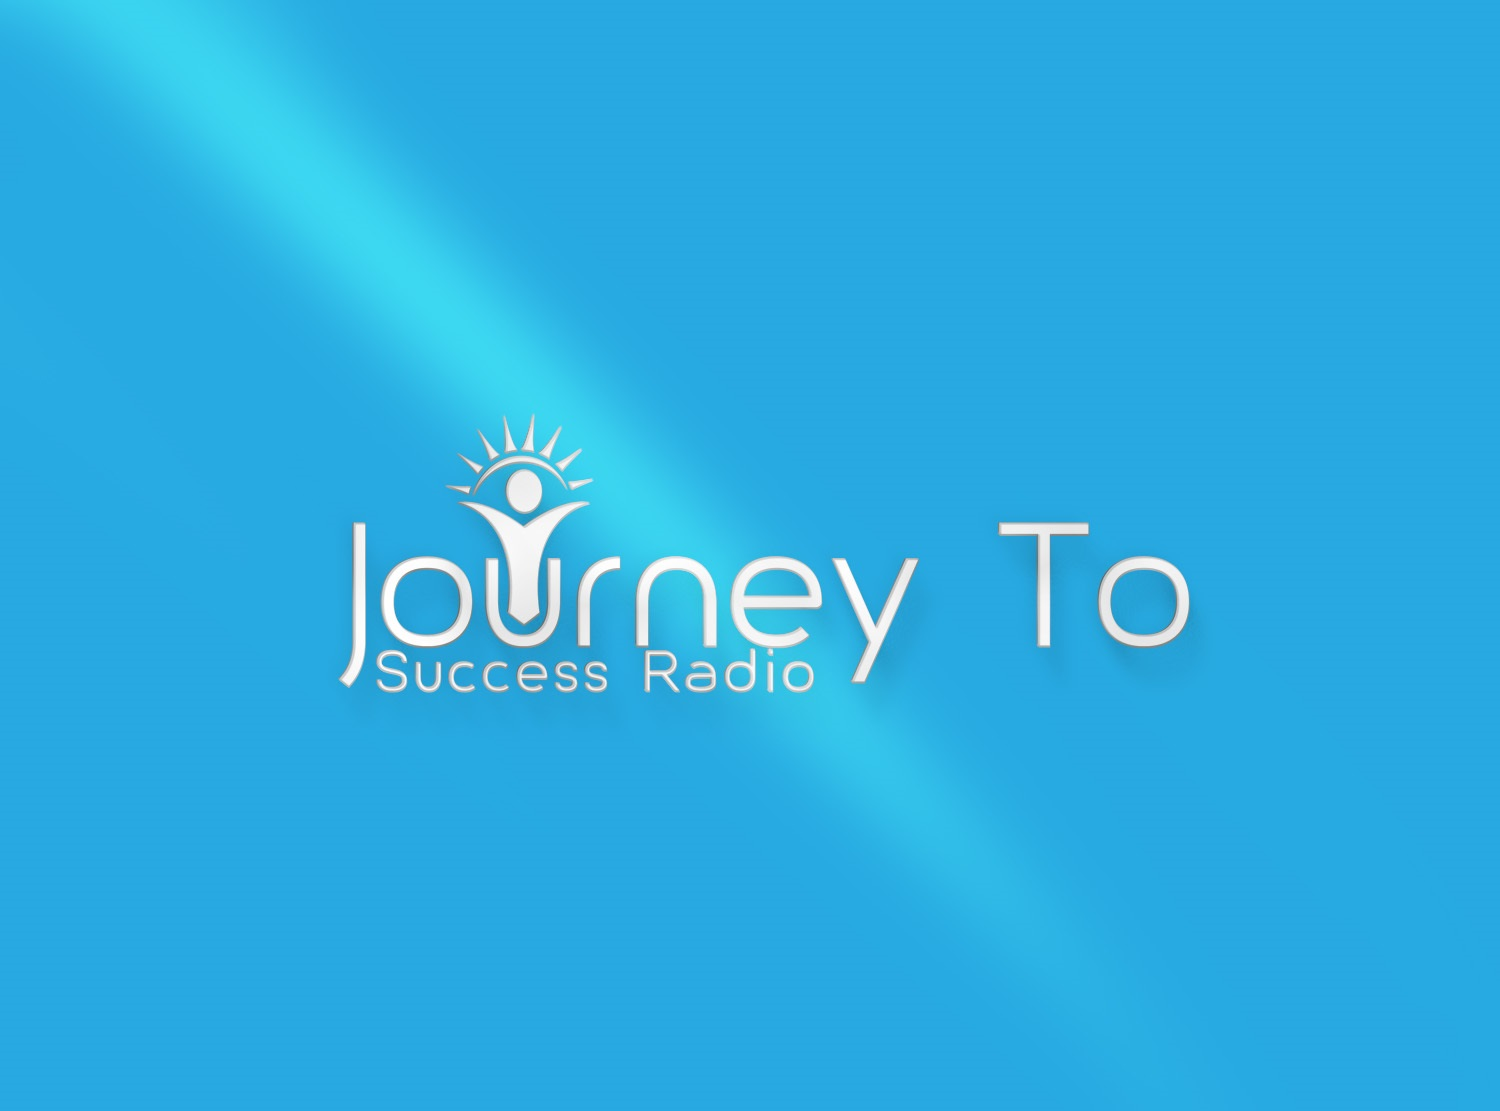 JourneyToSuccessRadiologoinblue